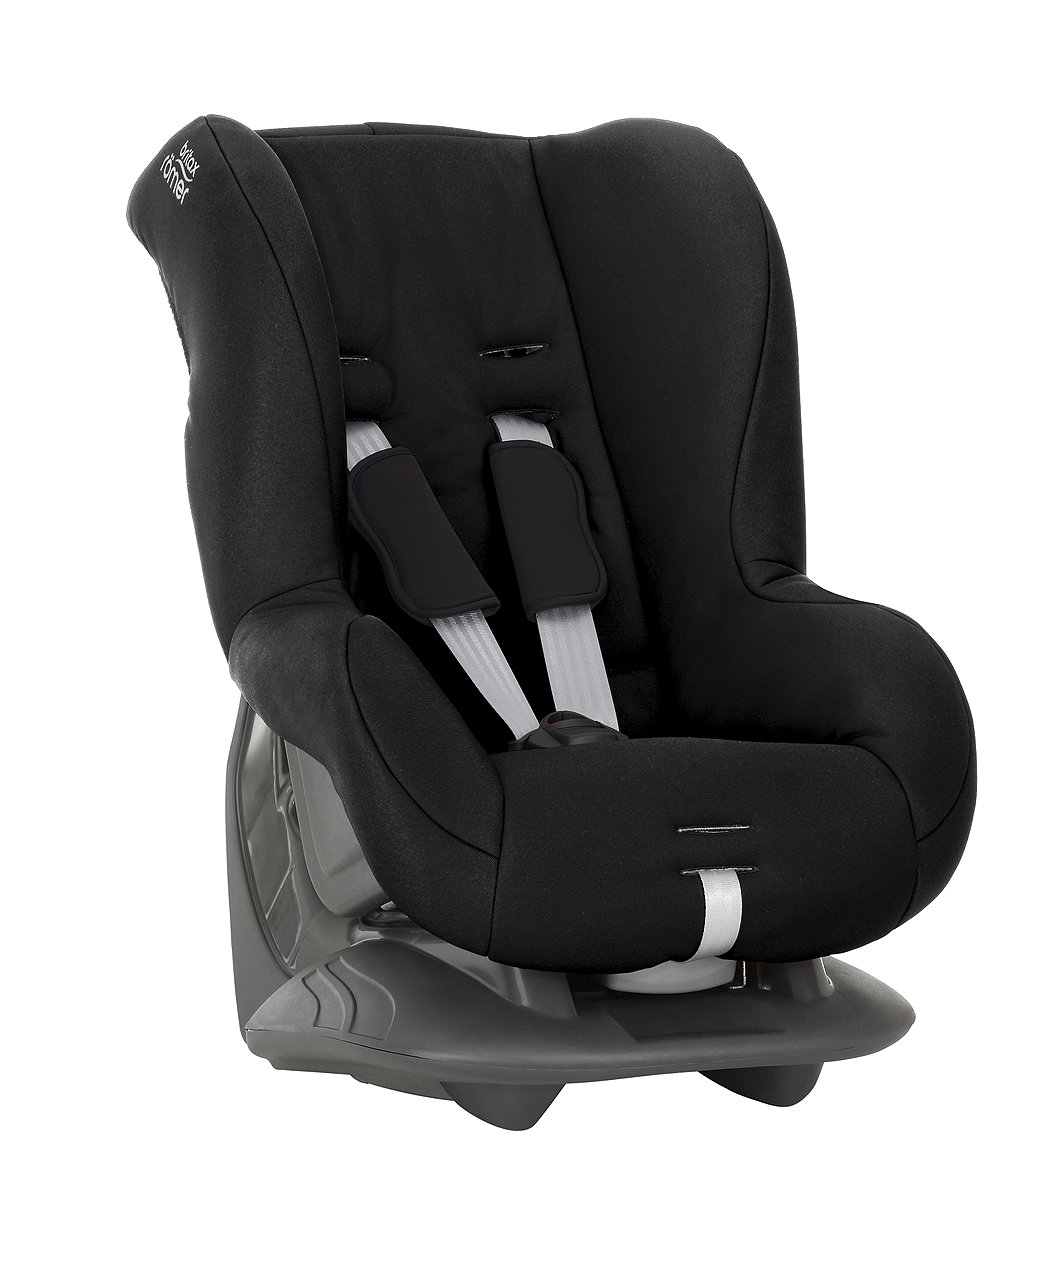 Download Britax Eclipse Car Seat Manual PDF